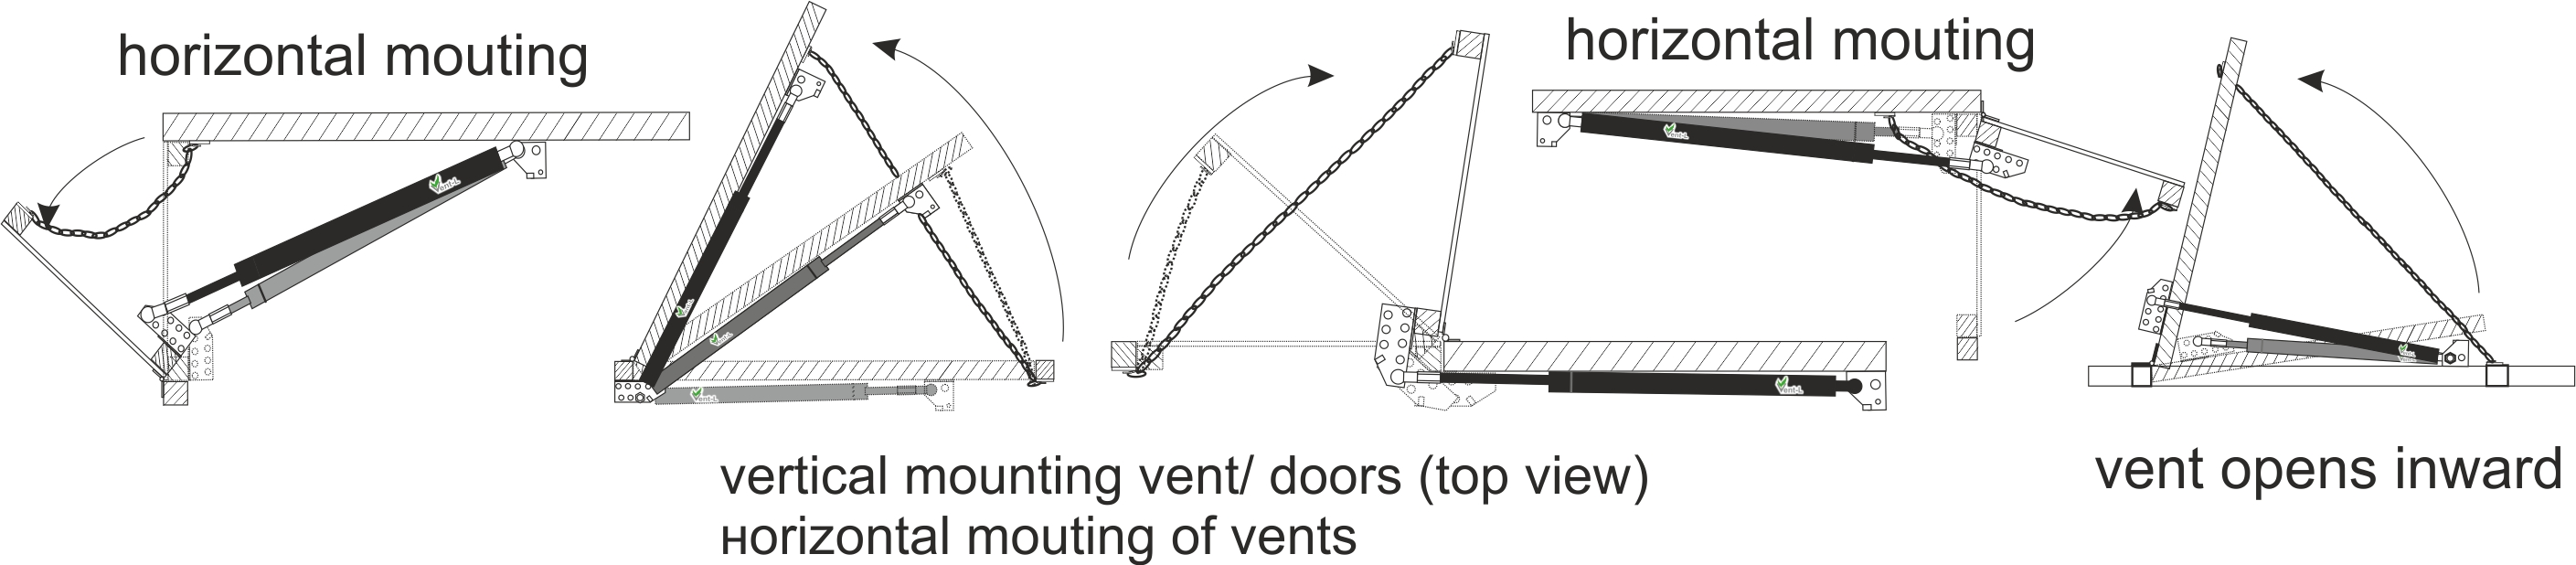 Automatic Vent opener Vent-L N01 opening temperature 24-32°C(75-90°F), openable surface area up to 3 m2 (32 ft2), of greenhouse load up to 100kg(220lb) for window/doors.